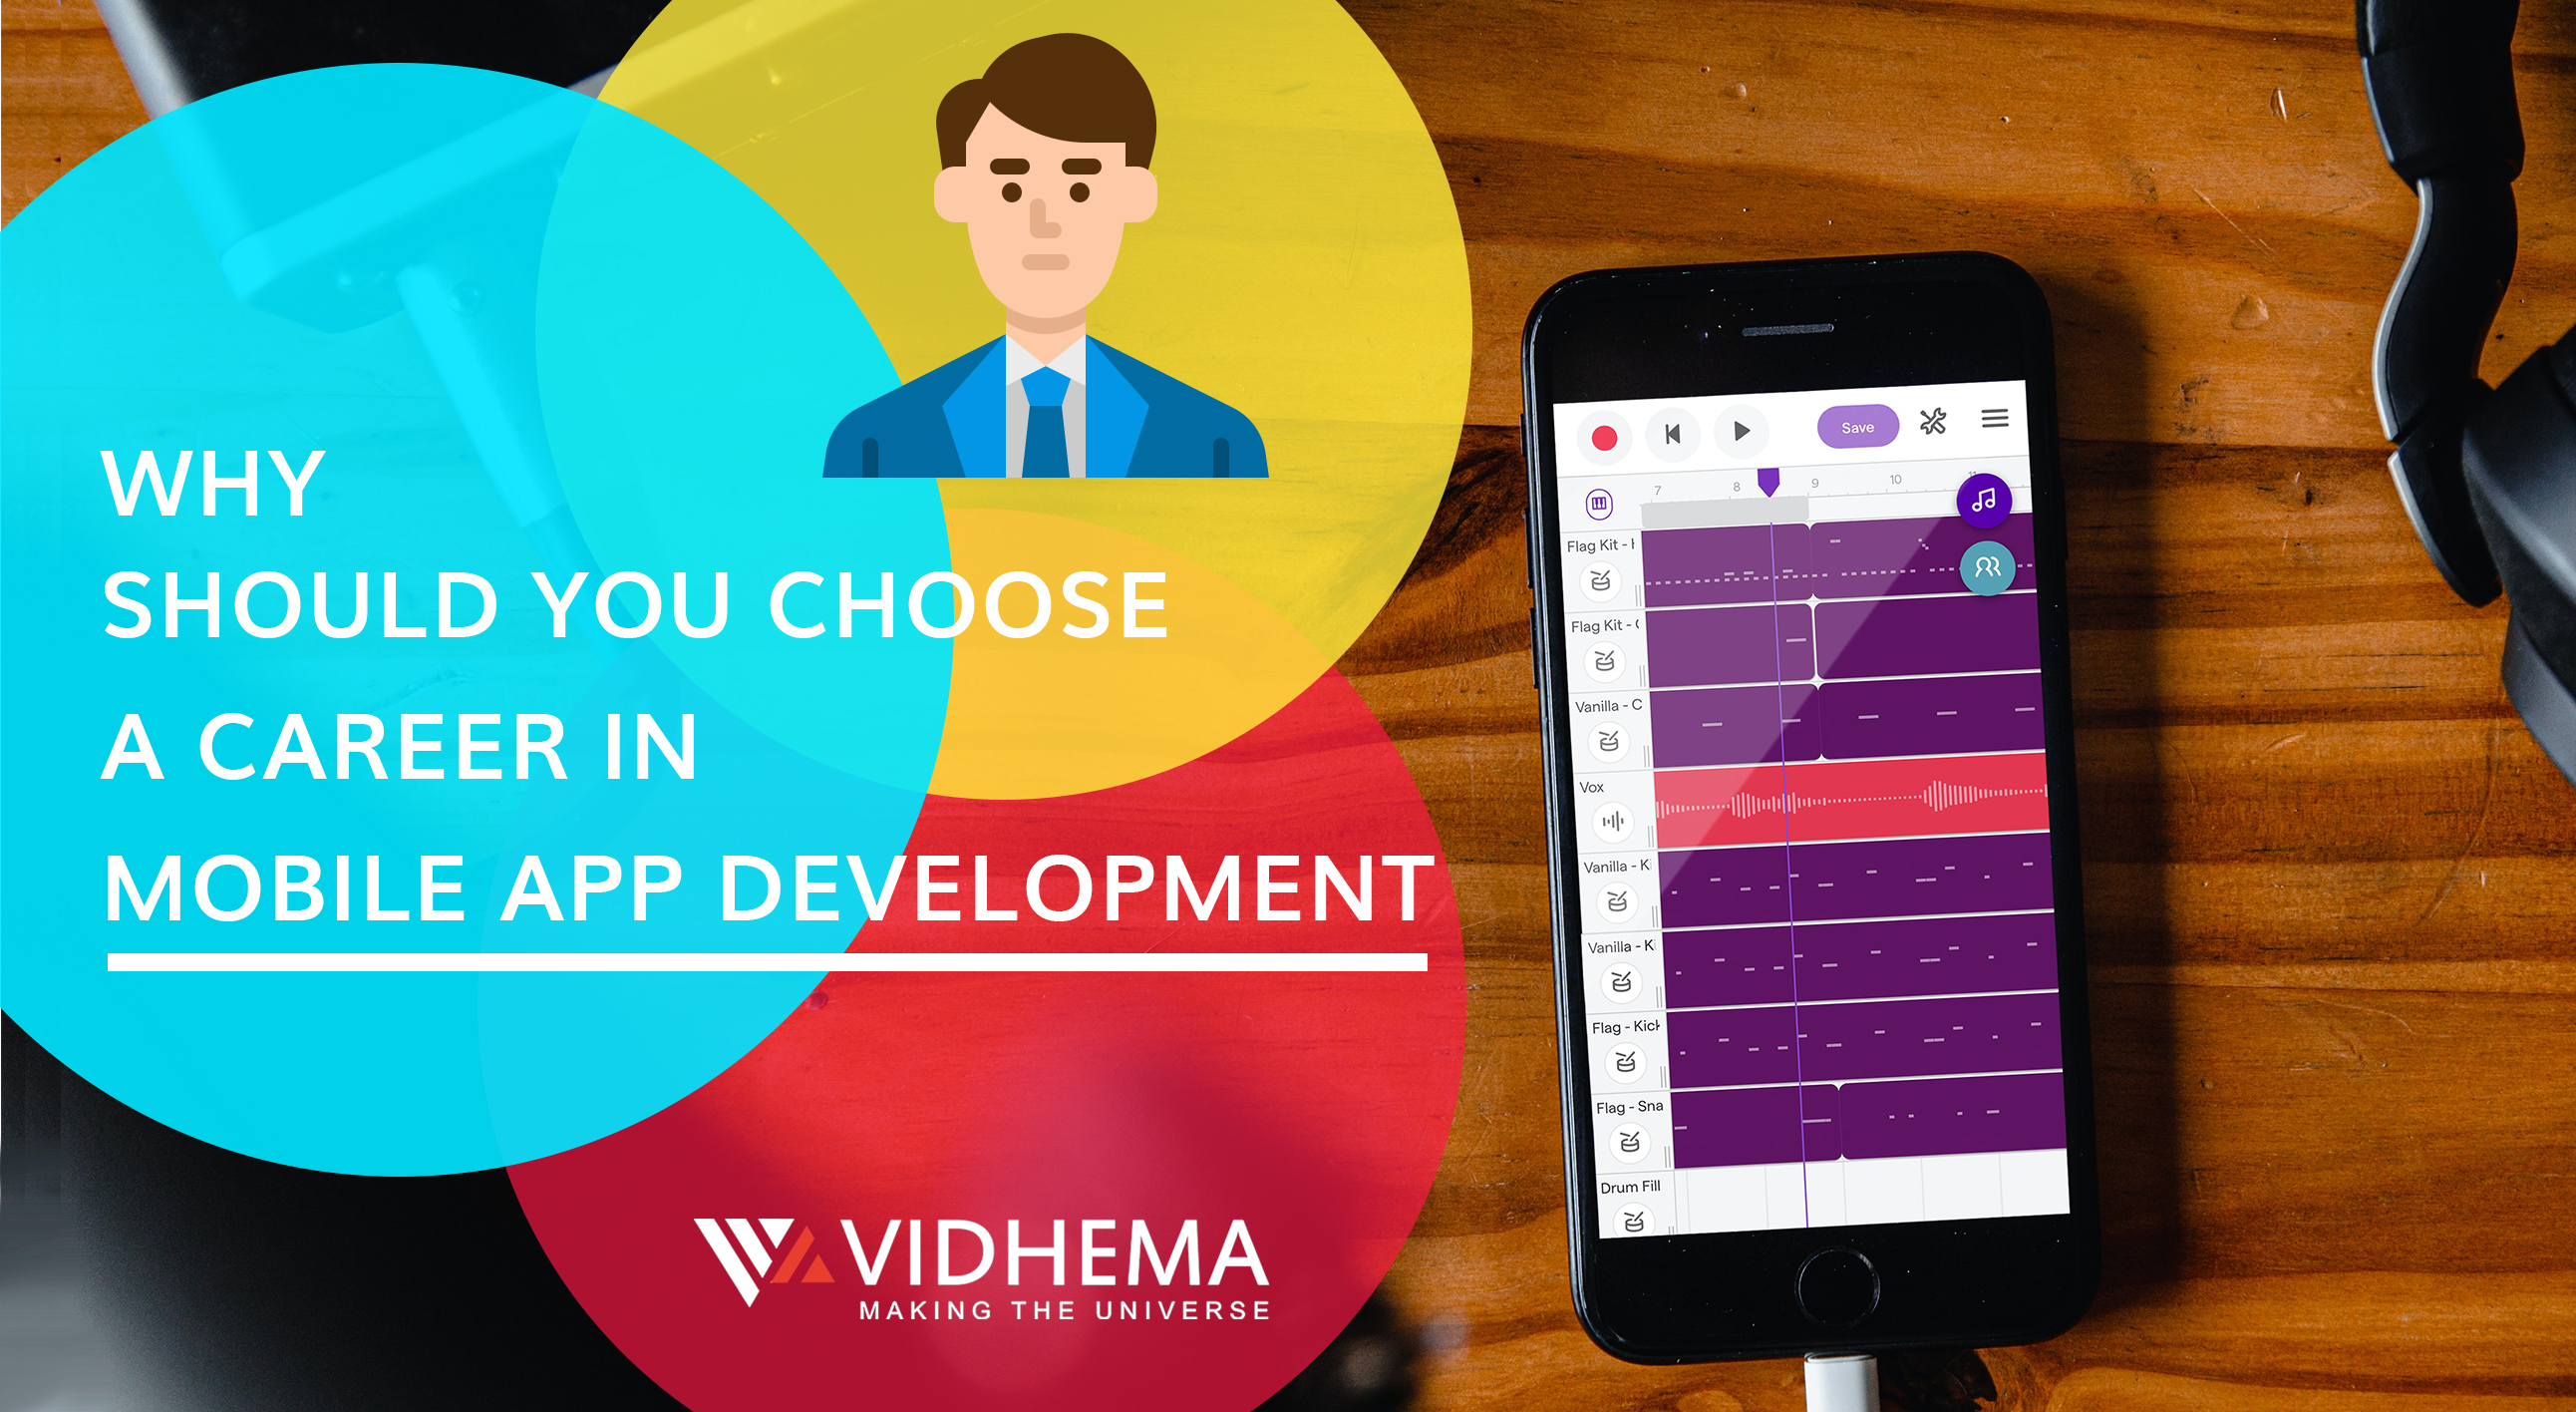 Why Should You Choose A Career In Mobile App Development?